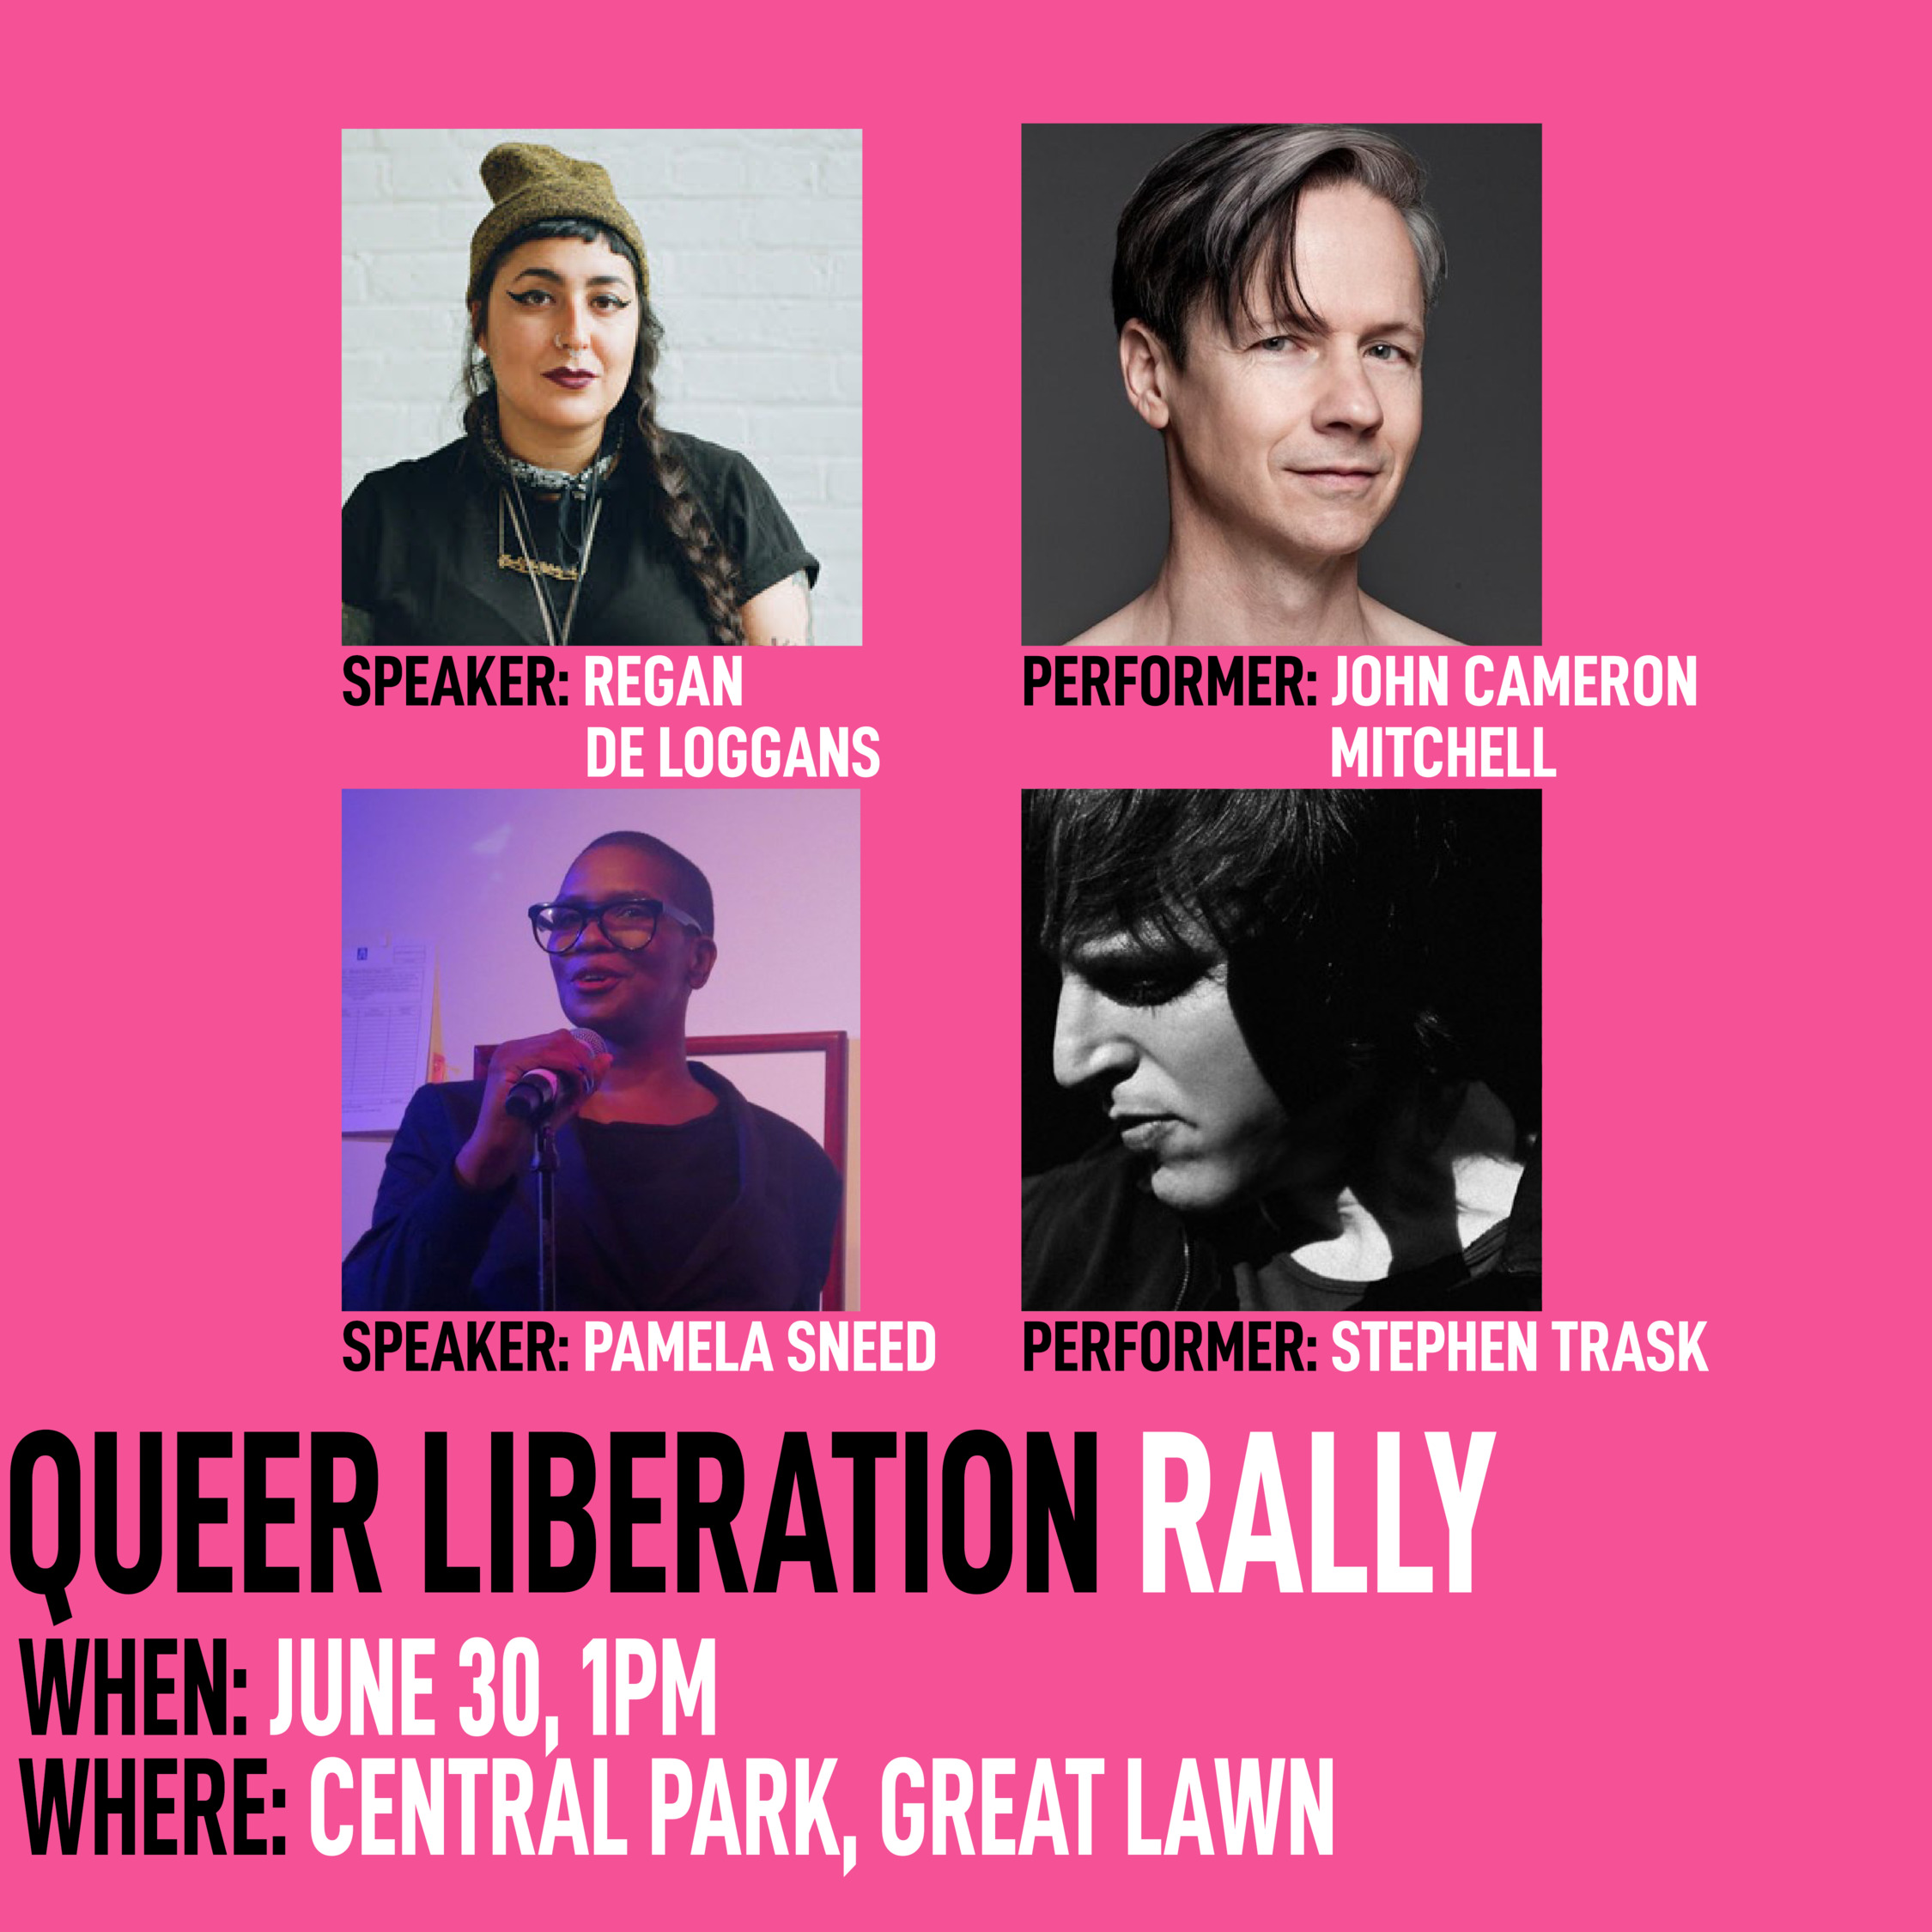 [RPC] Queer Liberation Rally Speakers 4 Square4.jpg